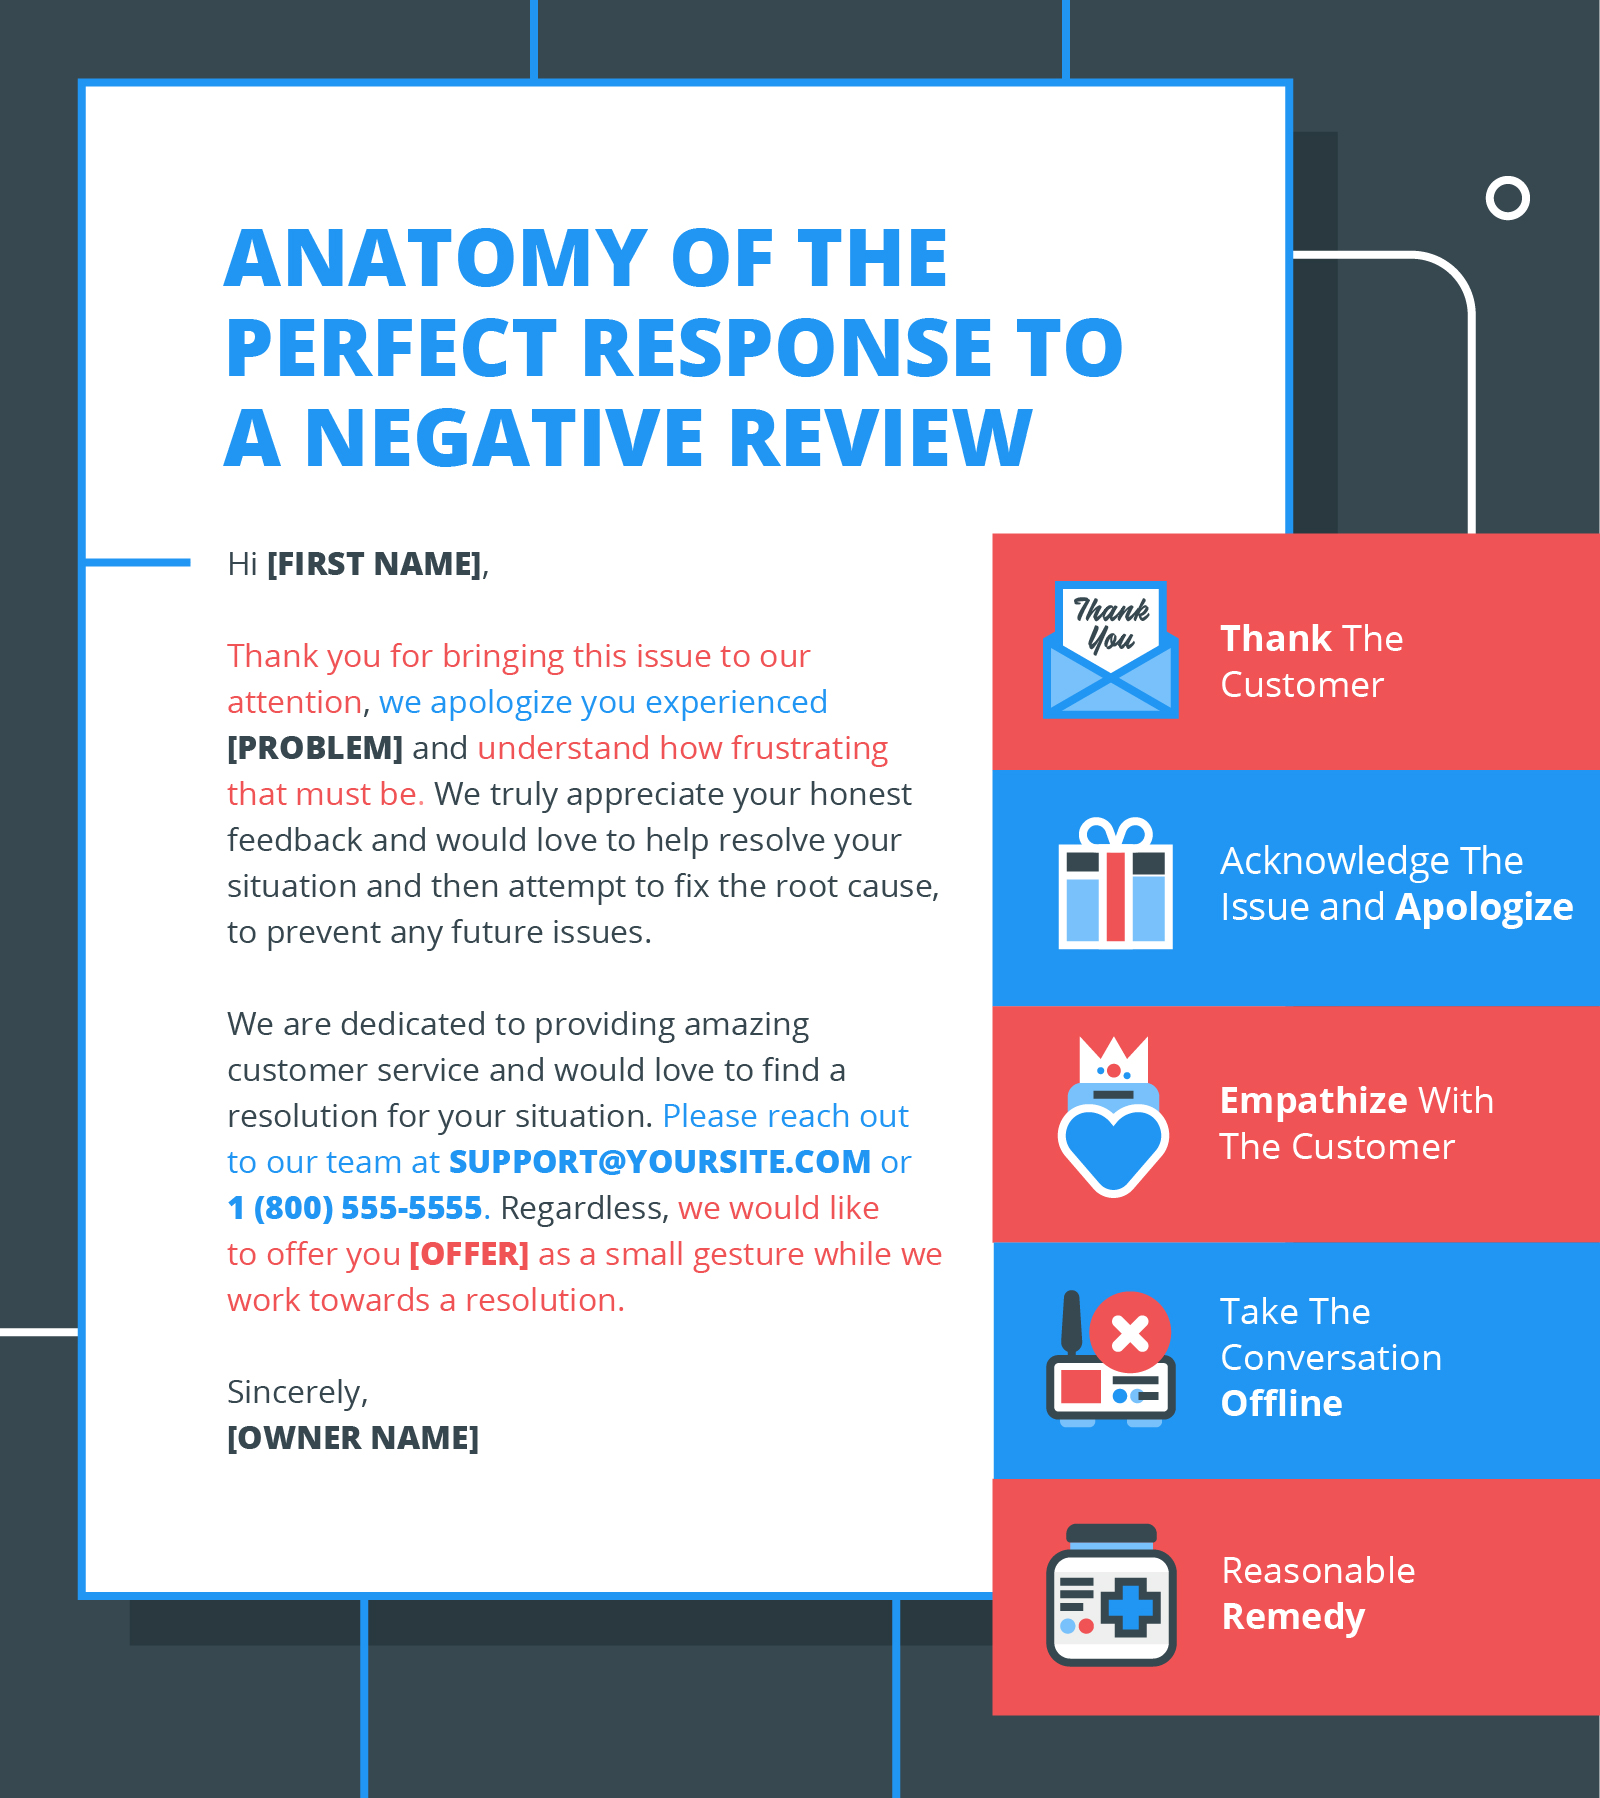 Template for responding to negative reviews highlighting tips.